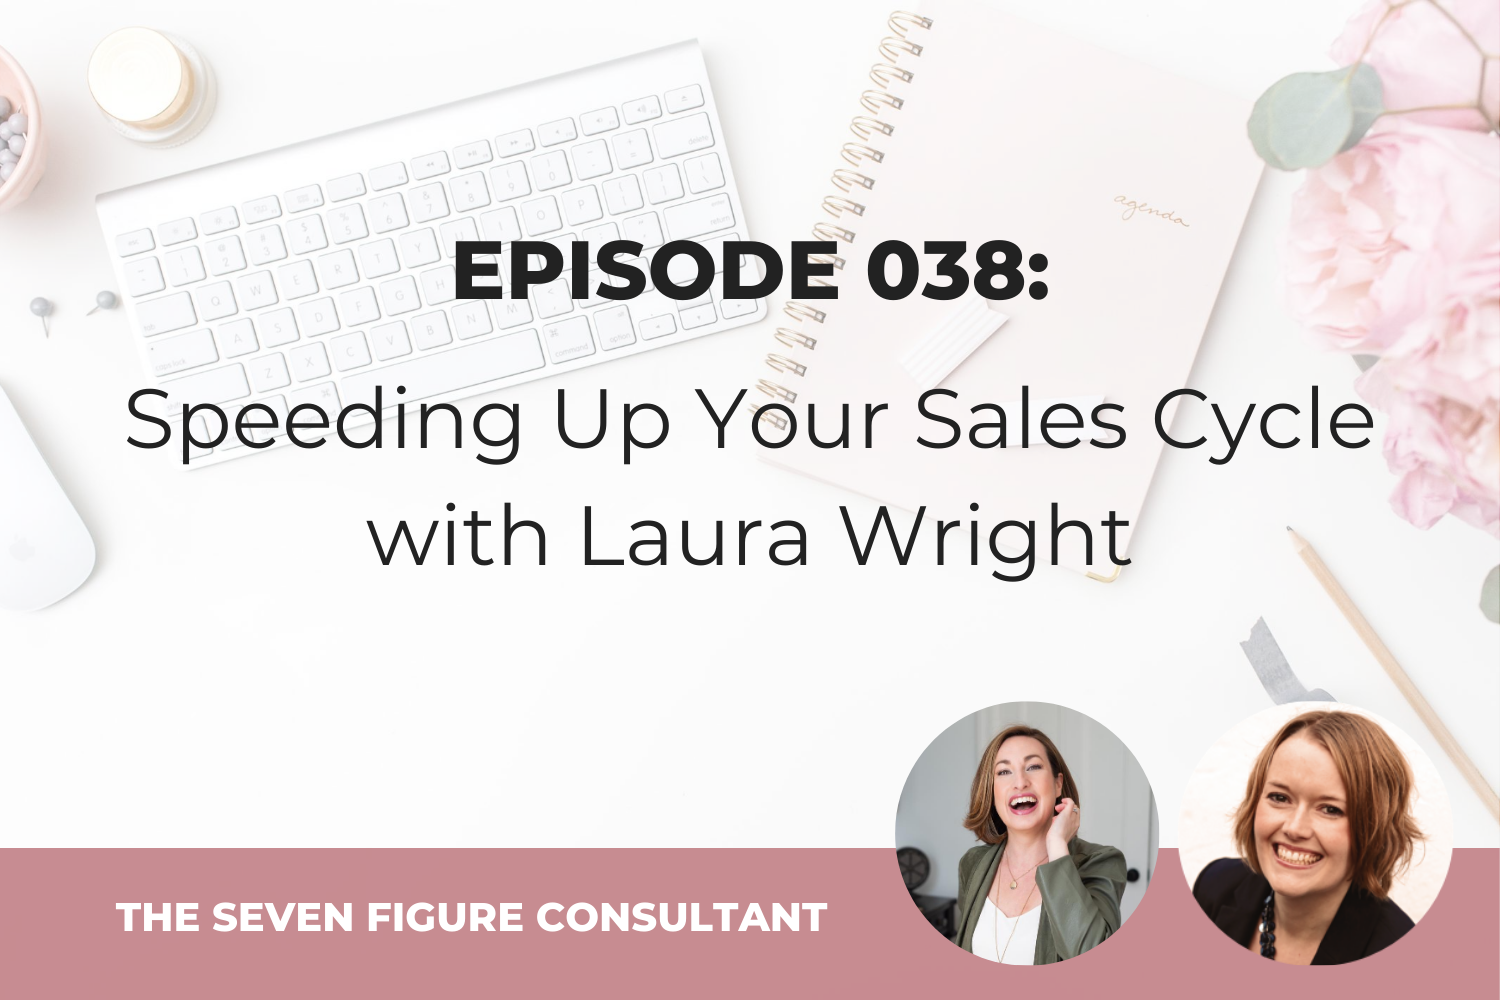 Episode 038: Speeding Up Your Sales Cycle, with Laura Wright